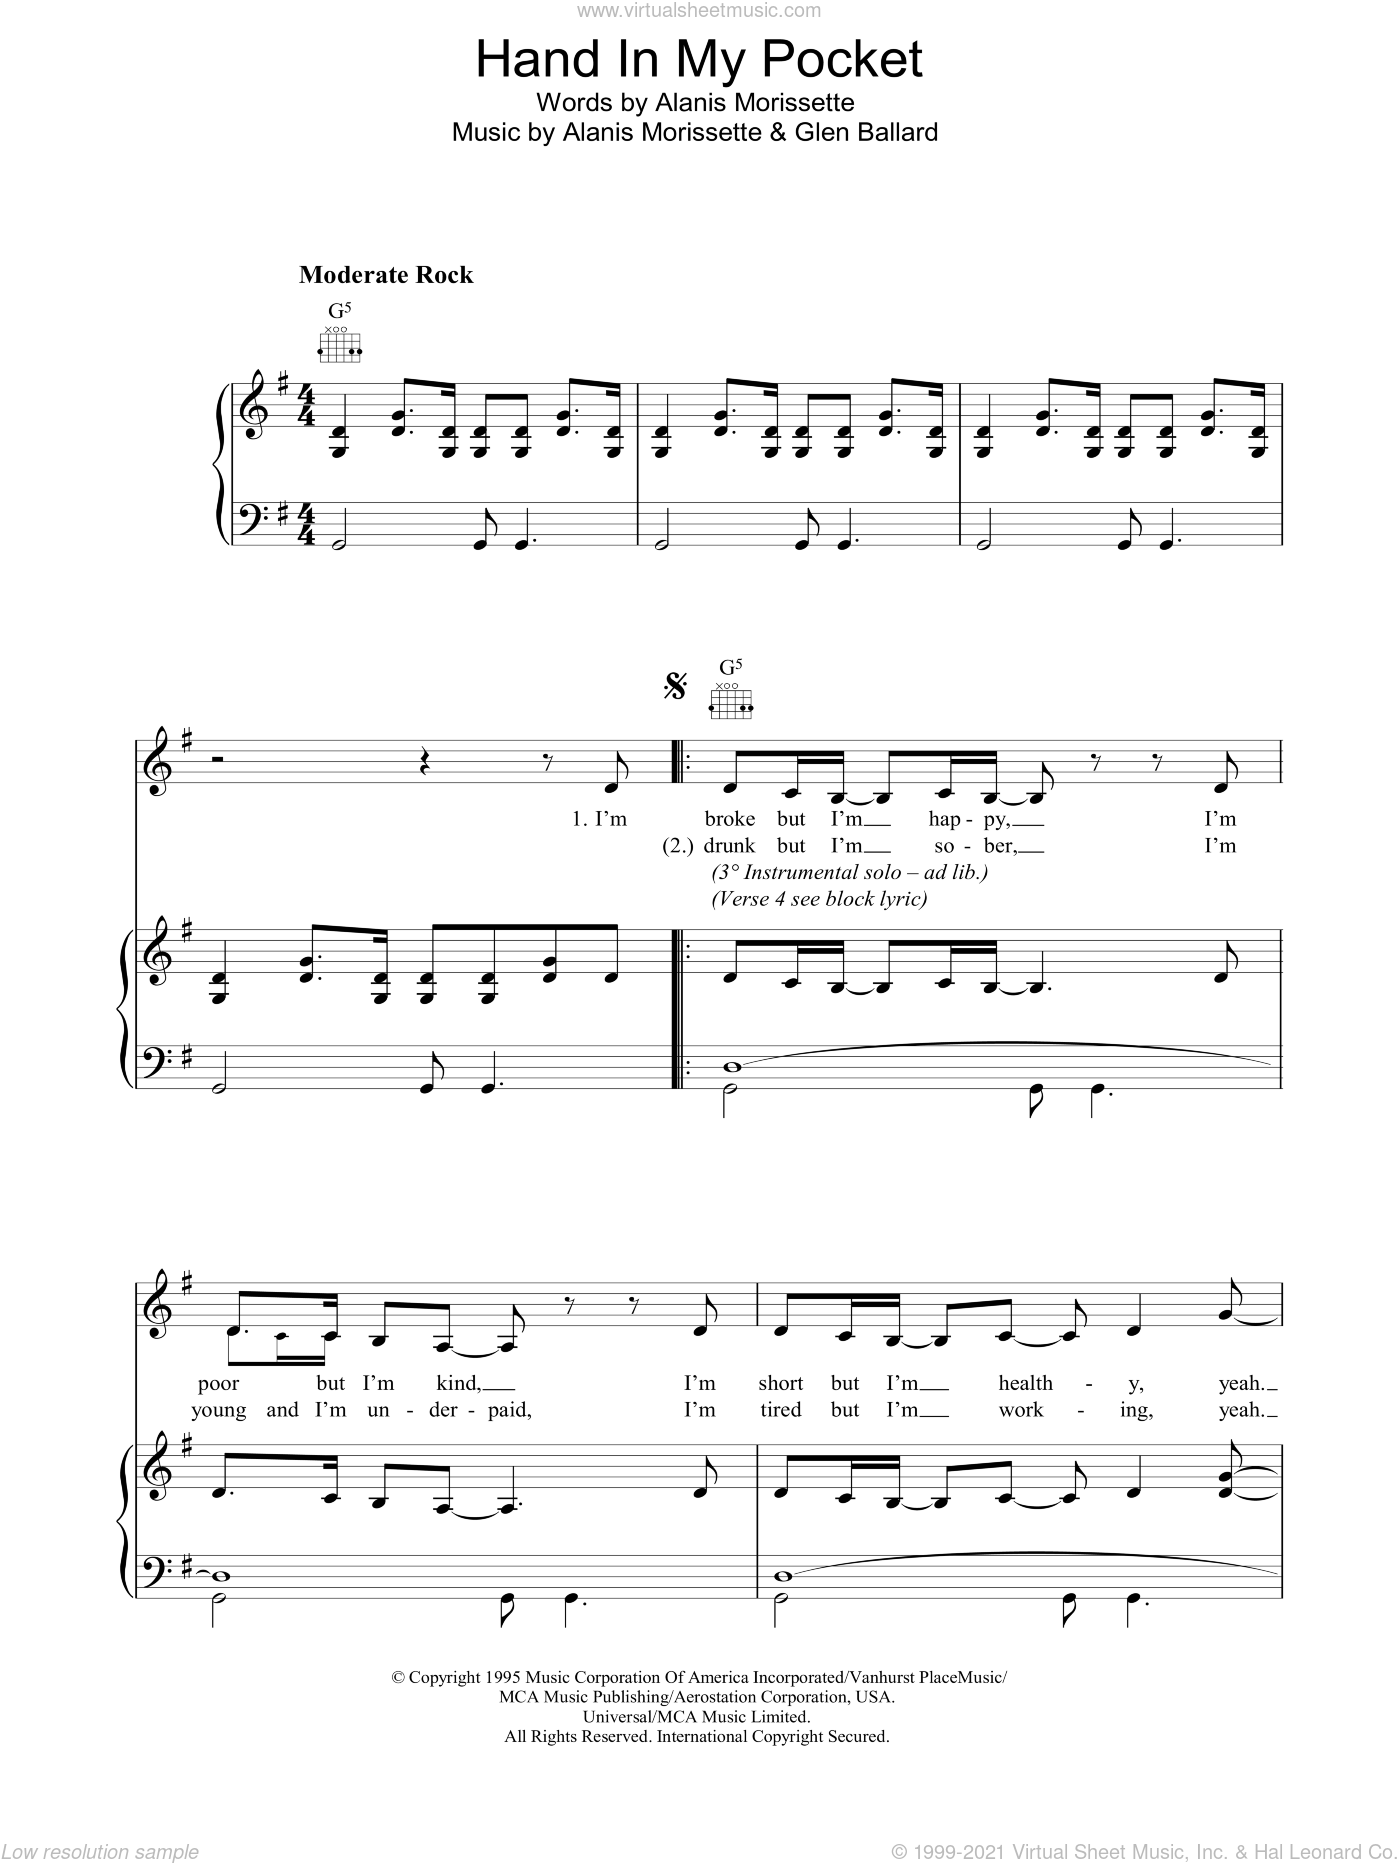 Hand In My Pocket sheet music for voice, piano or guitar by Glen Ballard